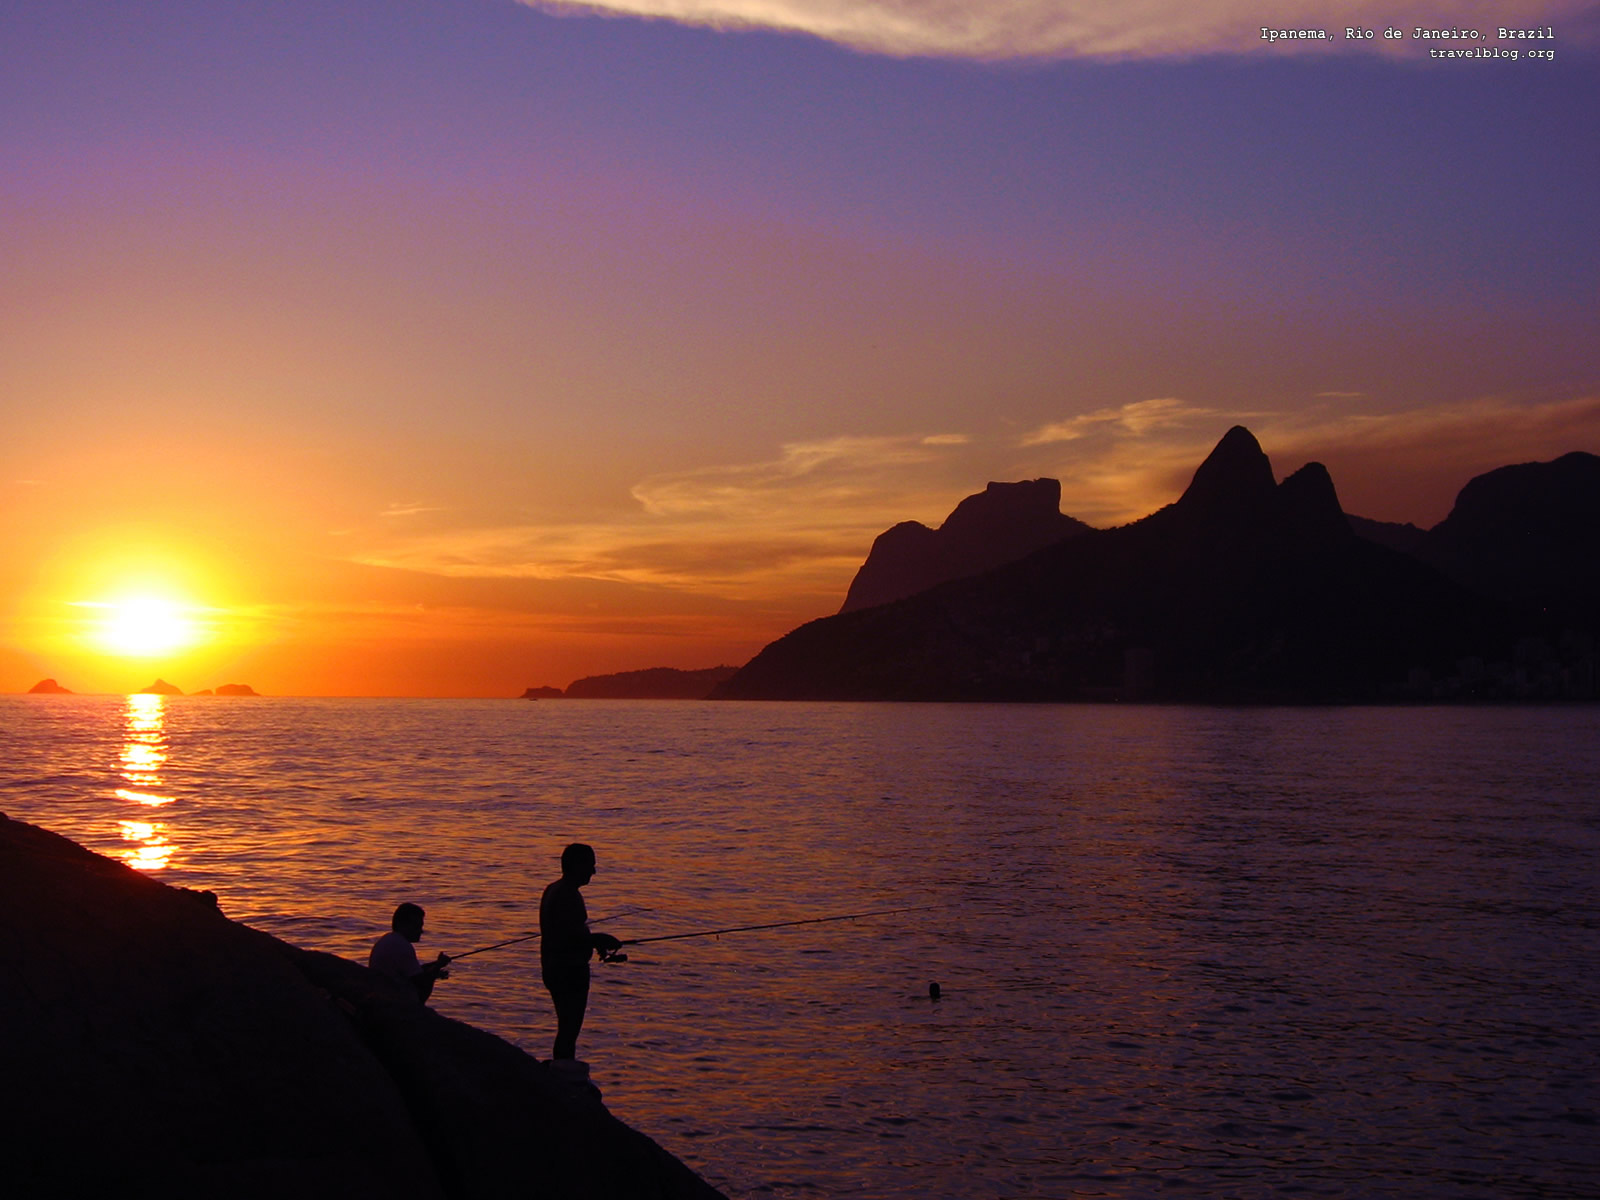 Sunset Wallpaper Brazil